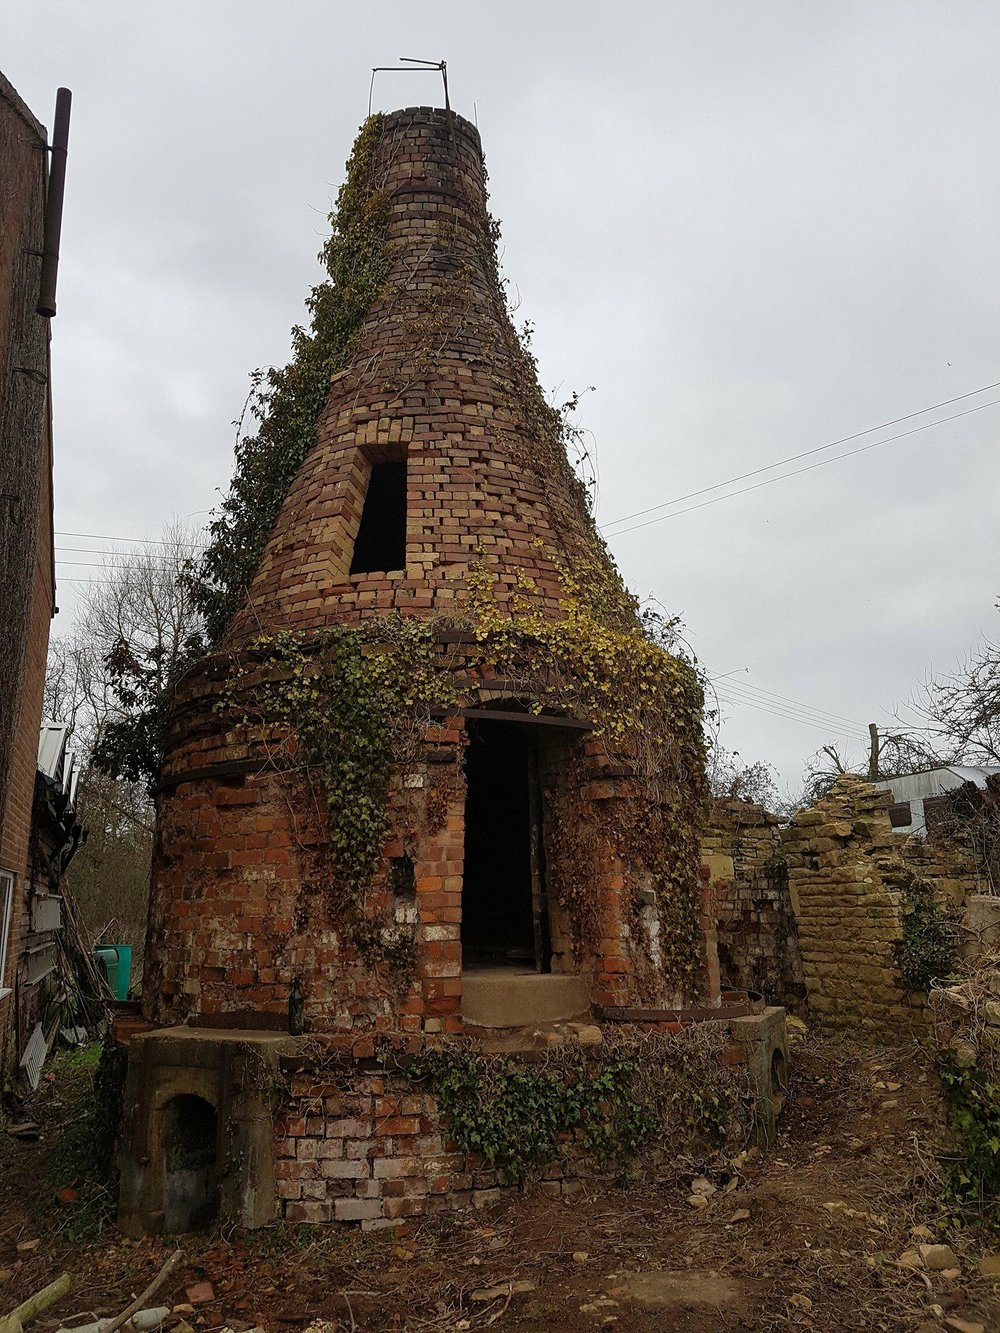 The bottle kiln in its current state. Image courtesy of Matt Grimmitt.